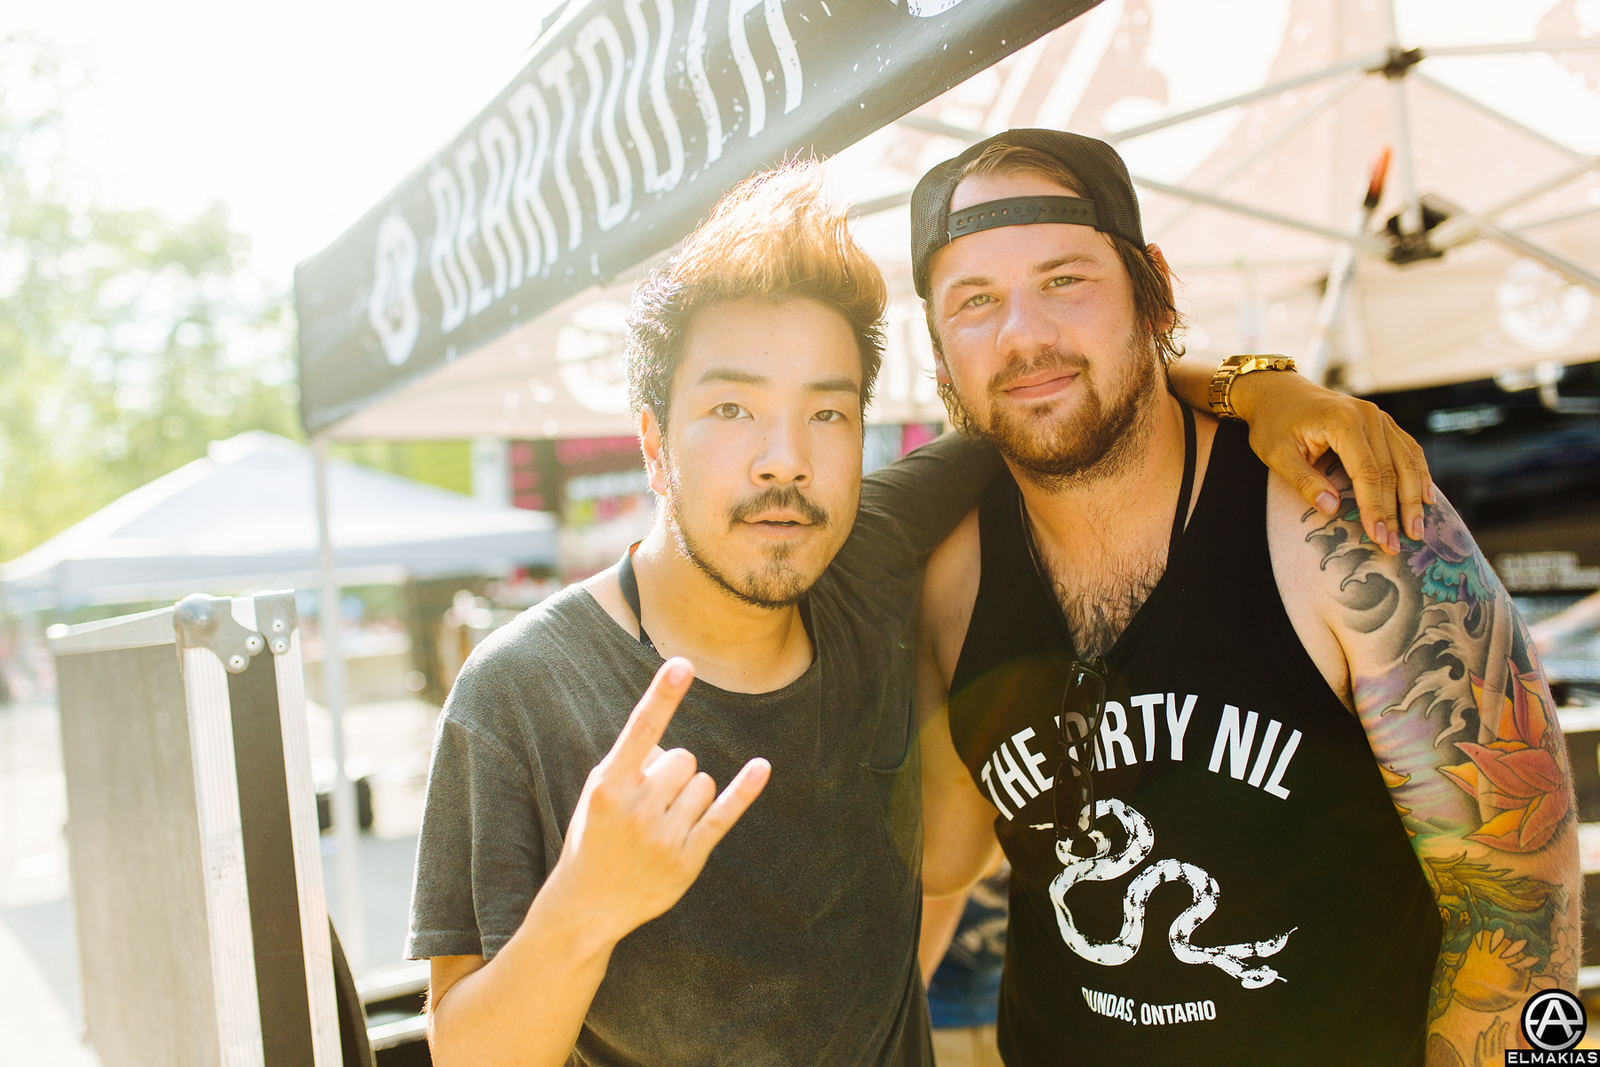 Kenta Koie of Crossfaith and Caleb Shomo of Beartooth at Vans Warped Tour 2015 by Adam Elmakias